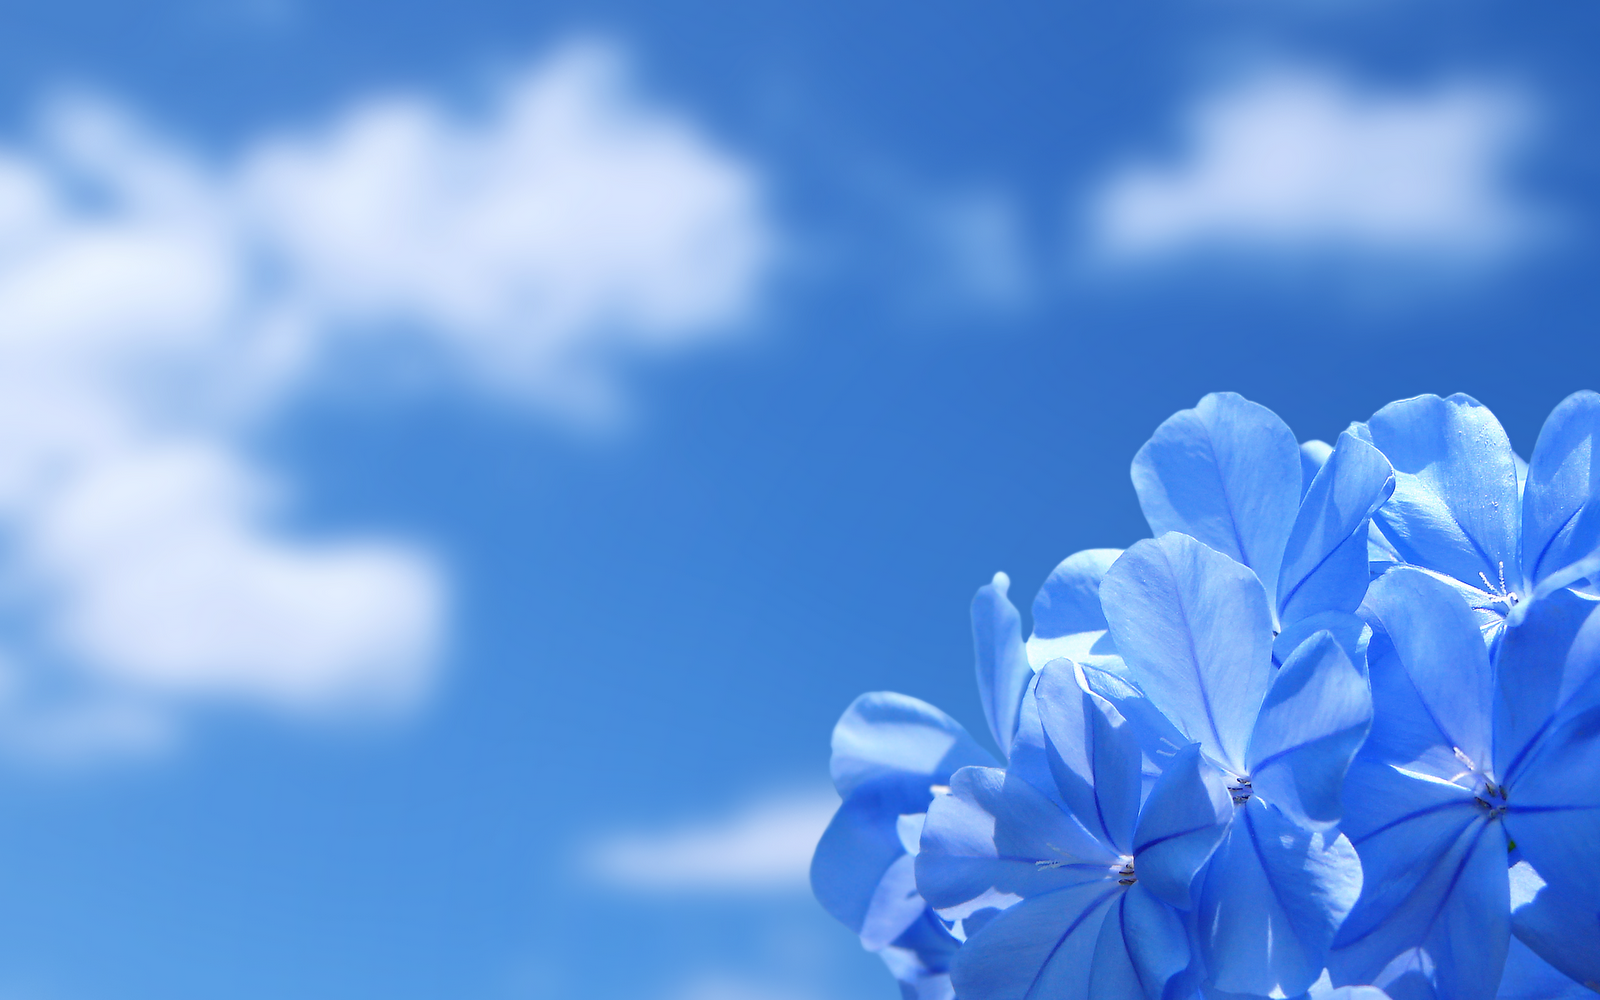 Download Free HD Wallpapers Of Flower Background